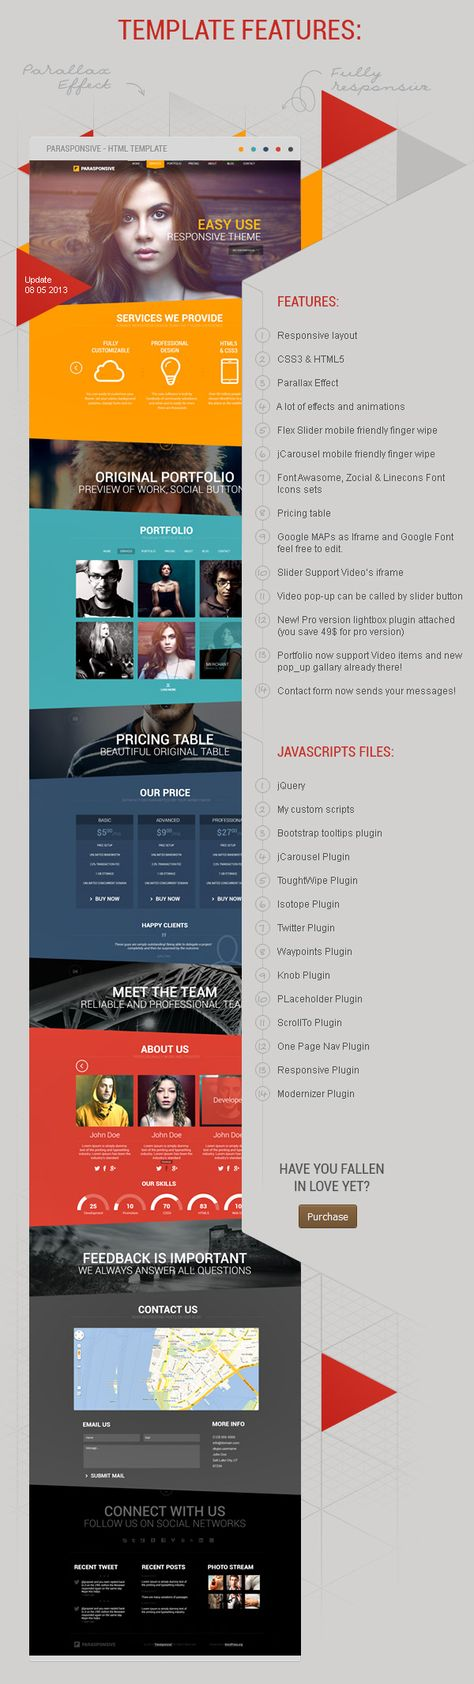 325+ Best Free Responsive HTML5 CSS3 Website Templates ...